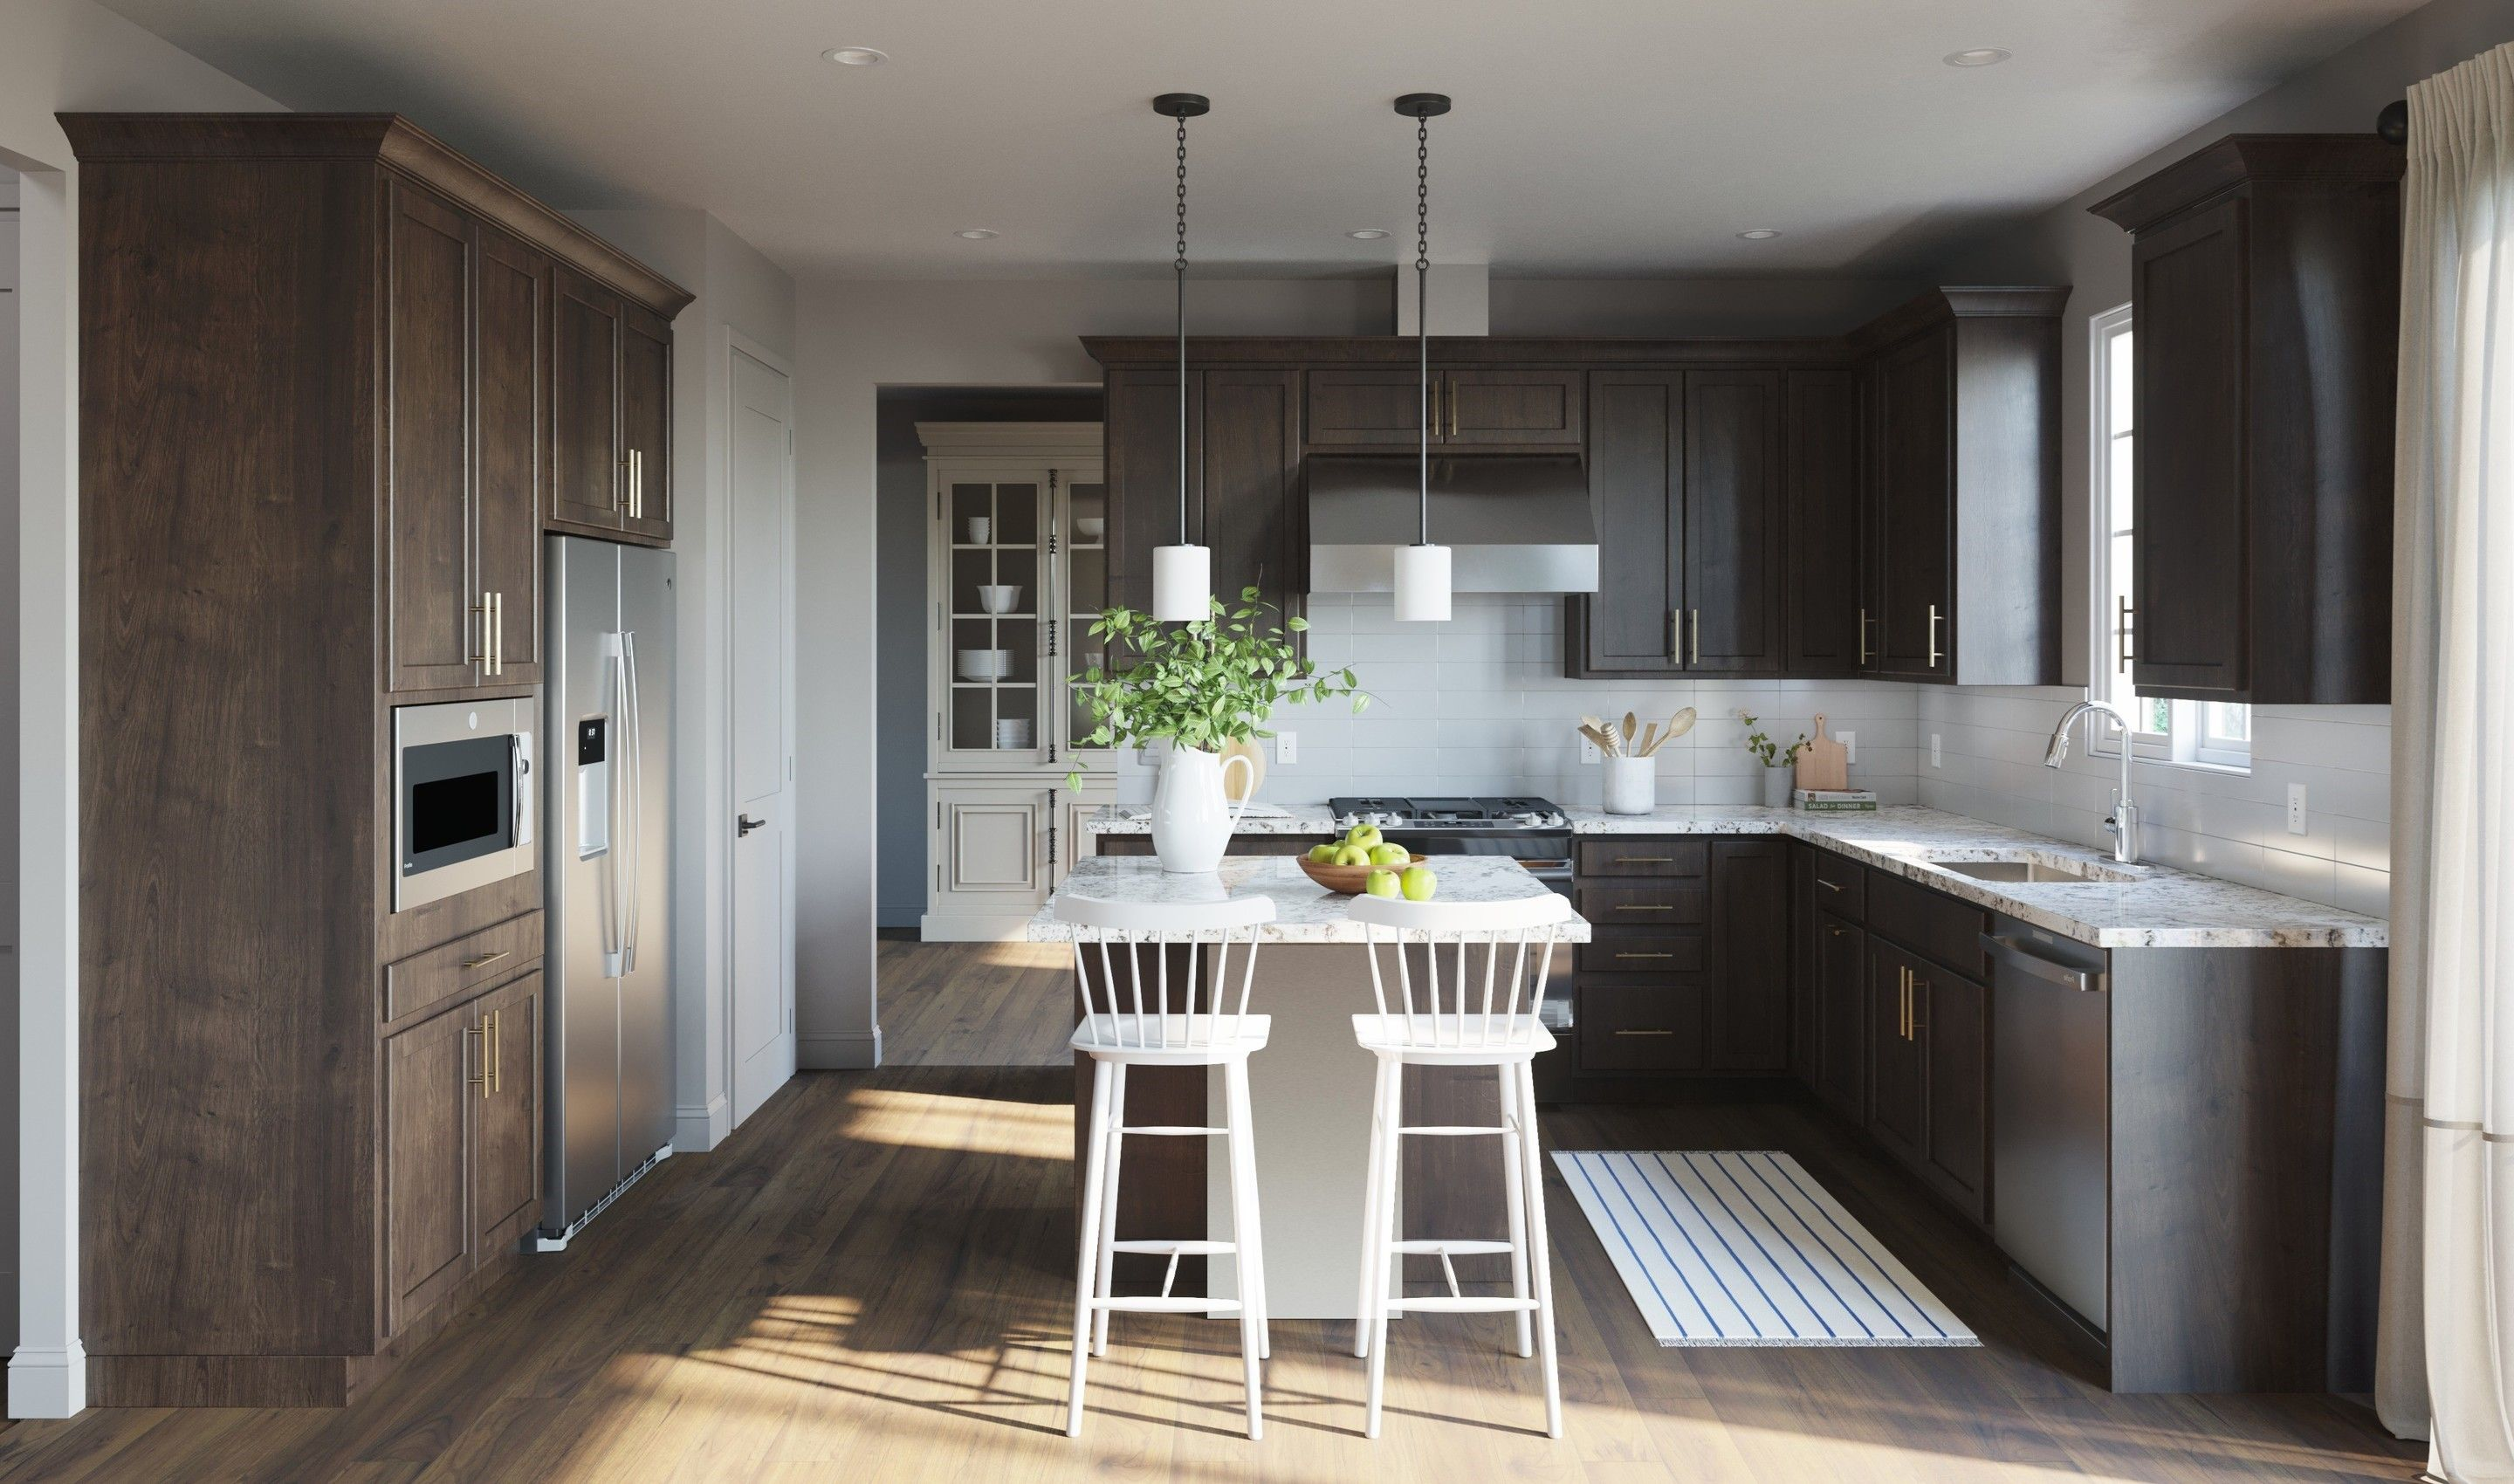 Kitchen featured in the Peachtree II By K. Hovnanian® Homes in Middlesex County, NJ